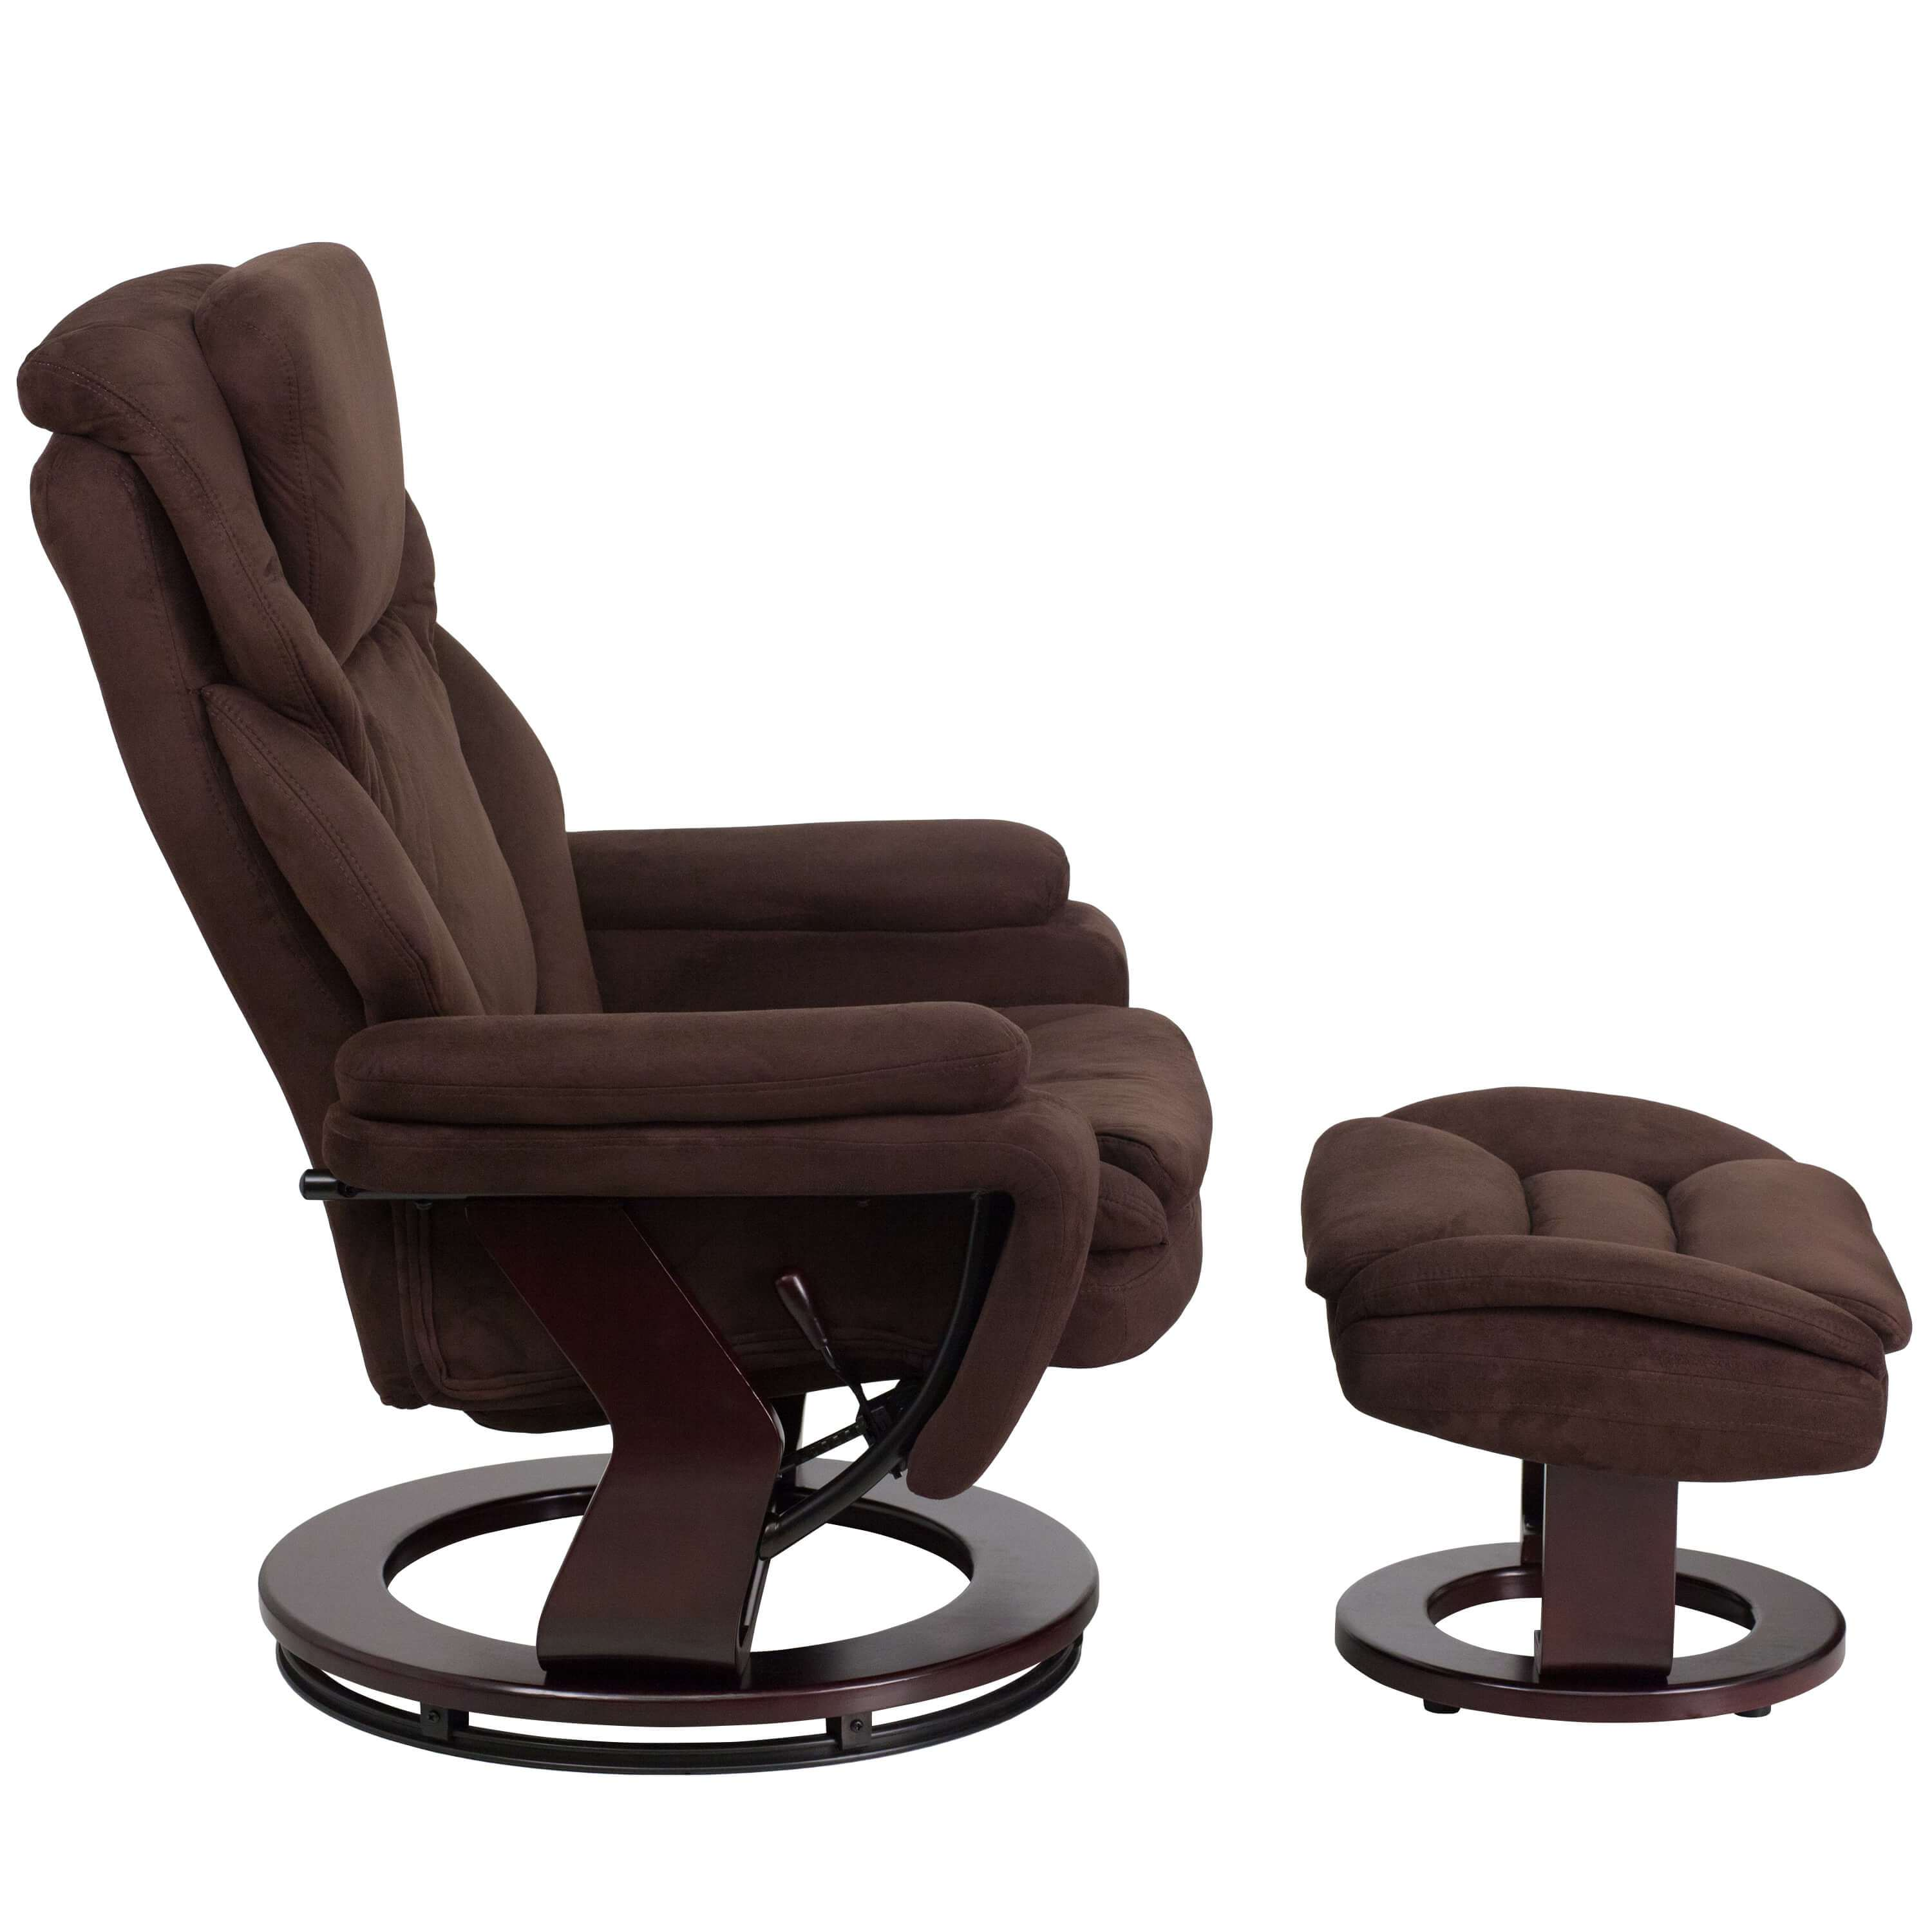 Brown recliner side view